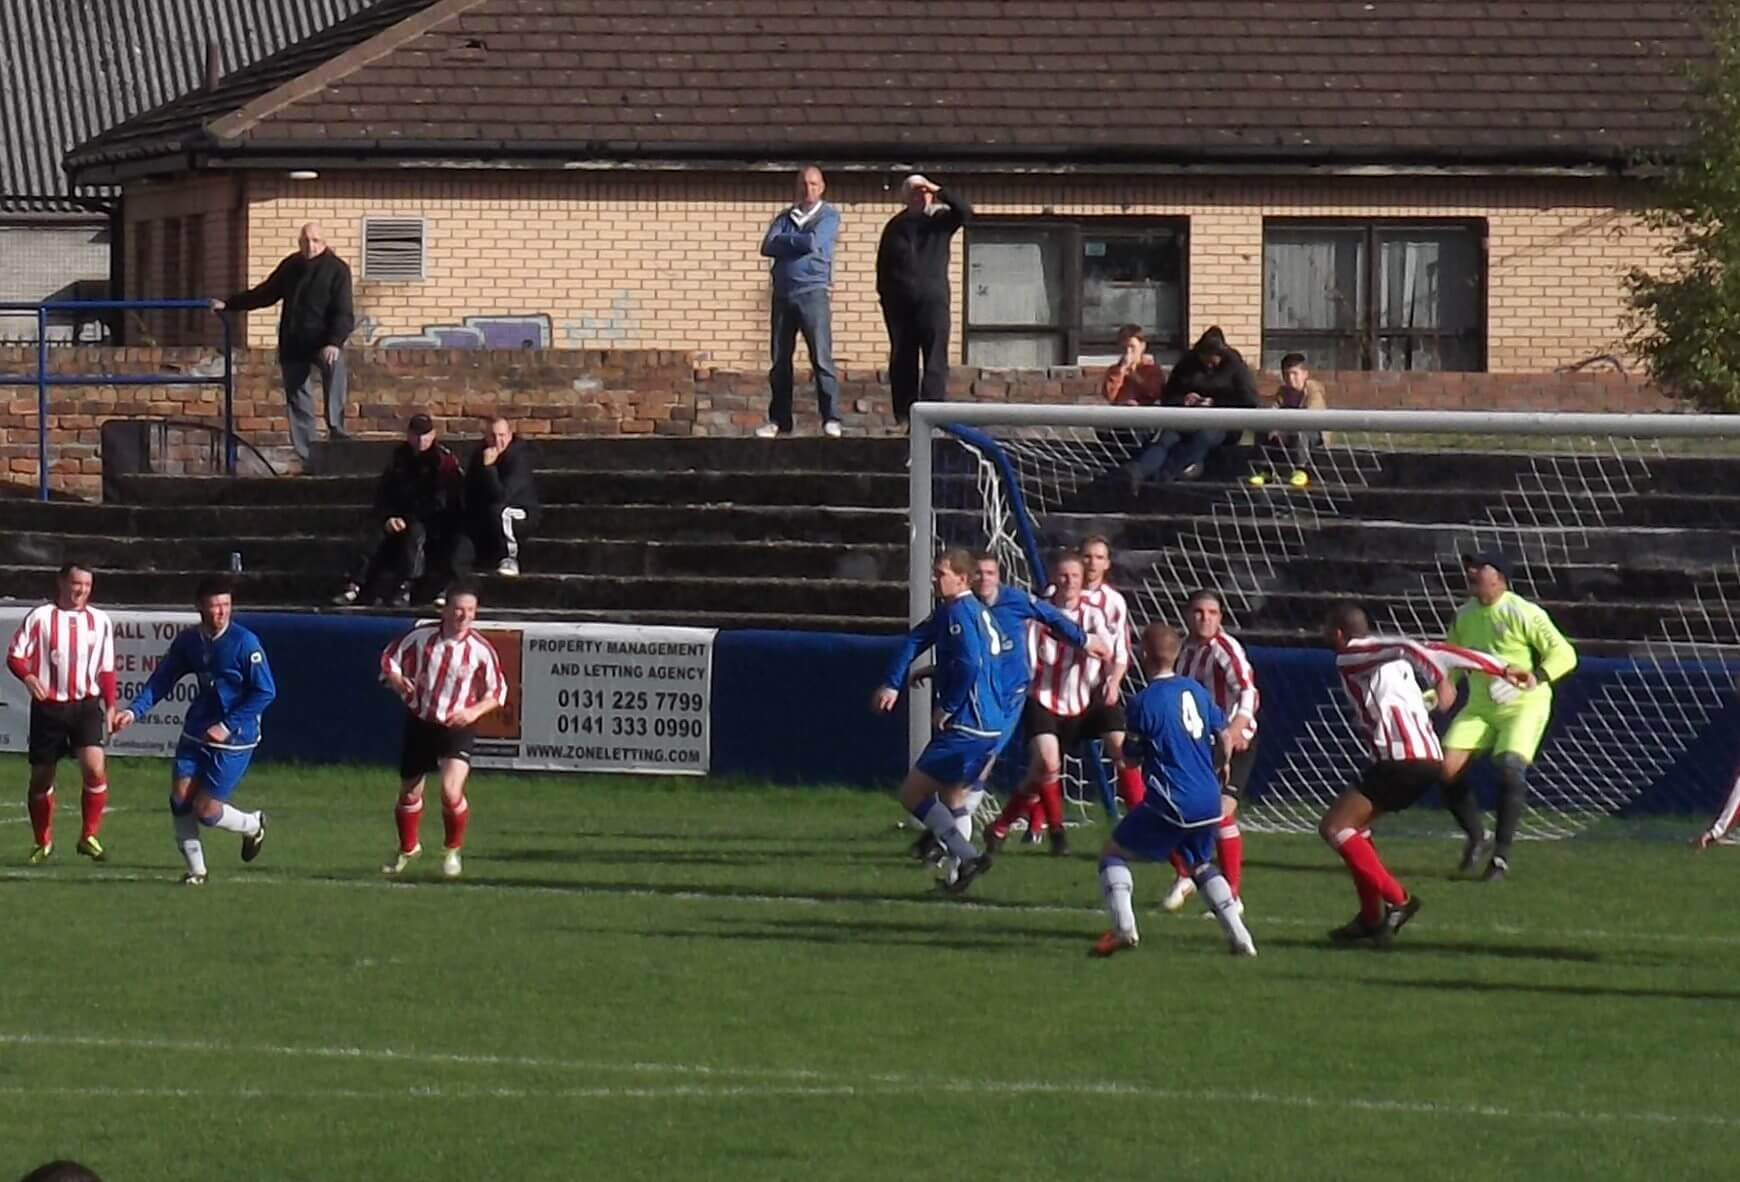 Thistle defend their goal in the second half